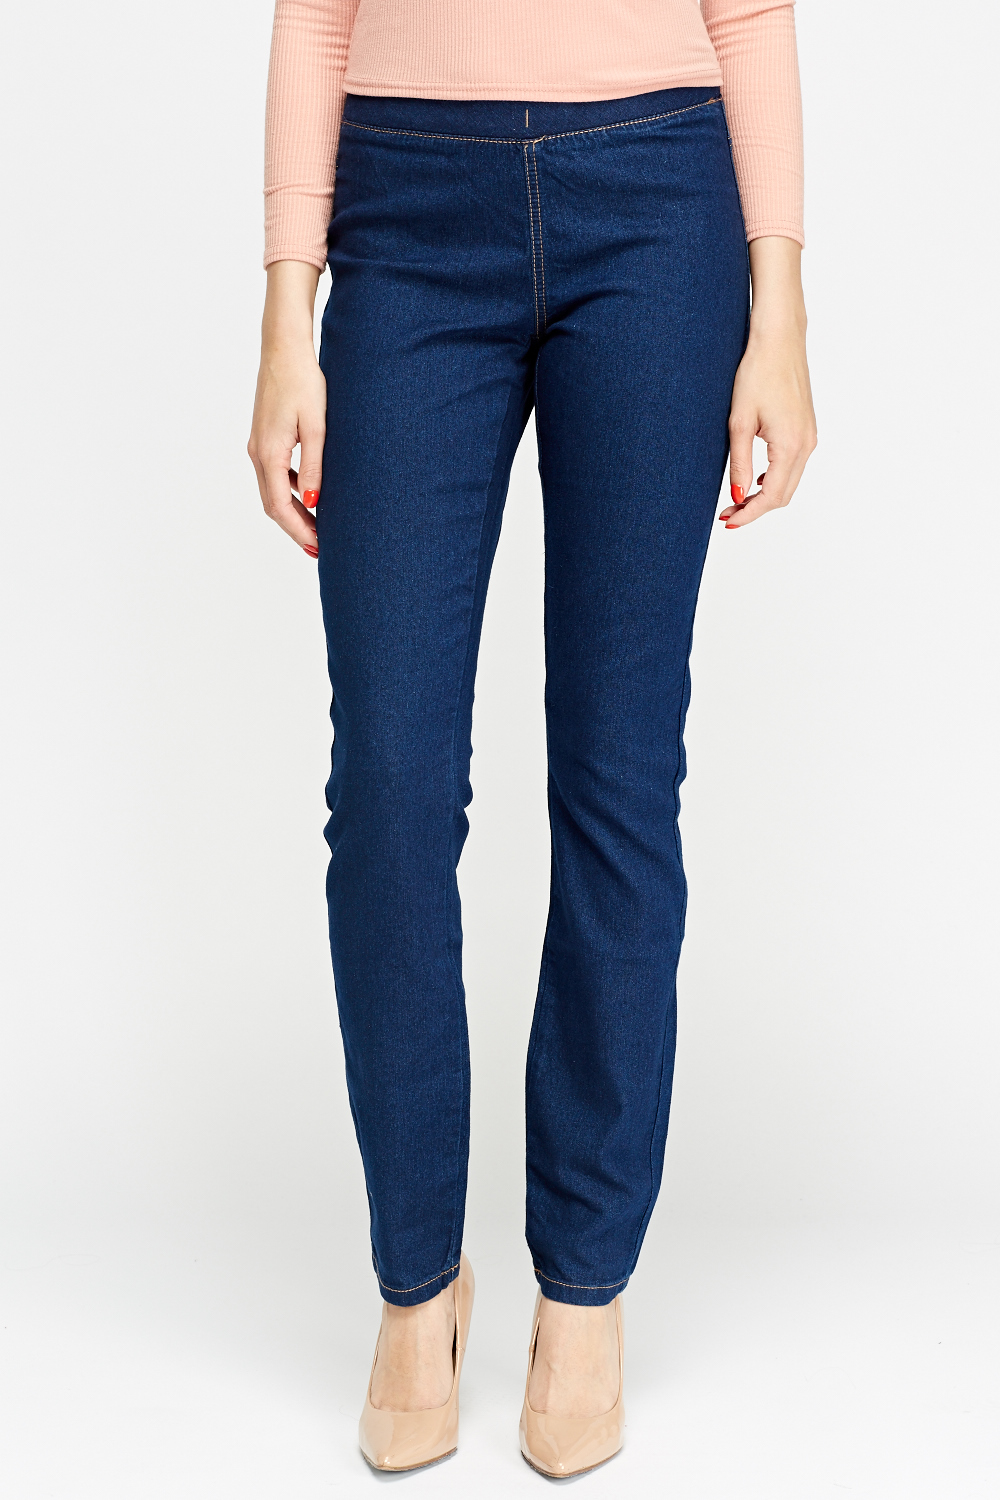 The key to flawless form? Start with these ultra-slimming jeggings—they ease over your silhouette and stretch without stretching out. With tunics, tees, and sweaters, wear them everywhere—you'll never want to take them off. (Because we're firm believers that denim should feel as fabulous as it looks.) Fabric stretches without stretching out.